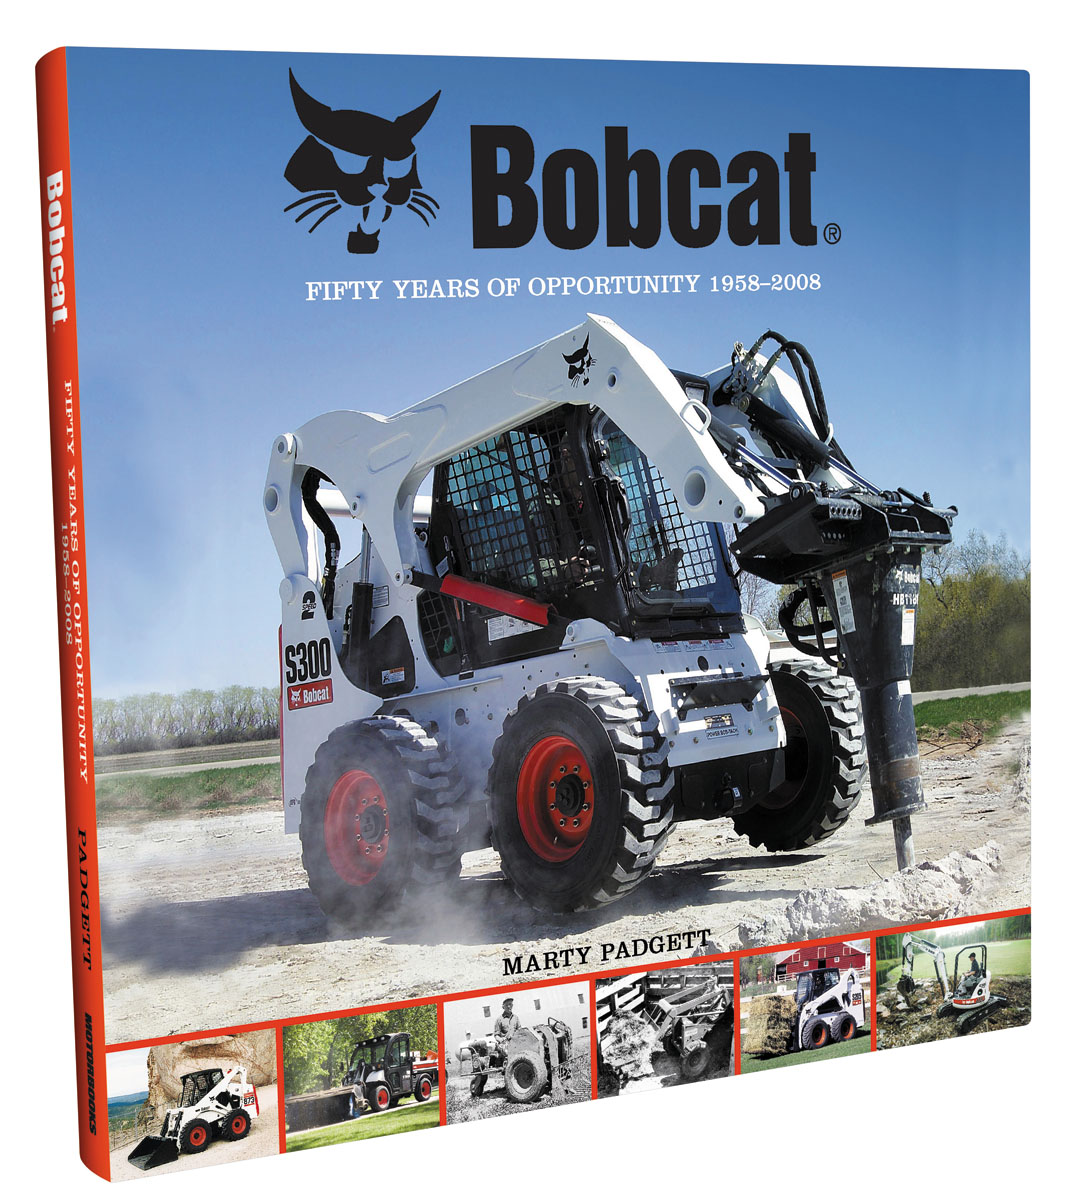 hight resolution of designing a new breed of skid steer loaders bobcat blog bobcat 50 years of opportunity 1958 bobcat s wiring diagram